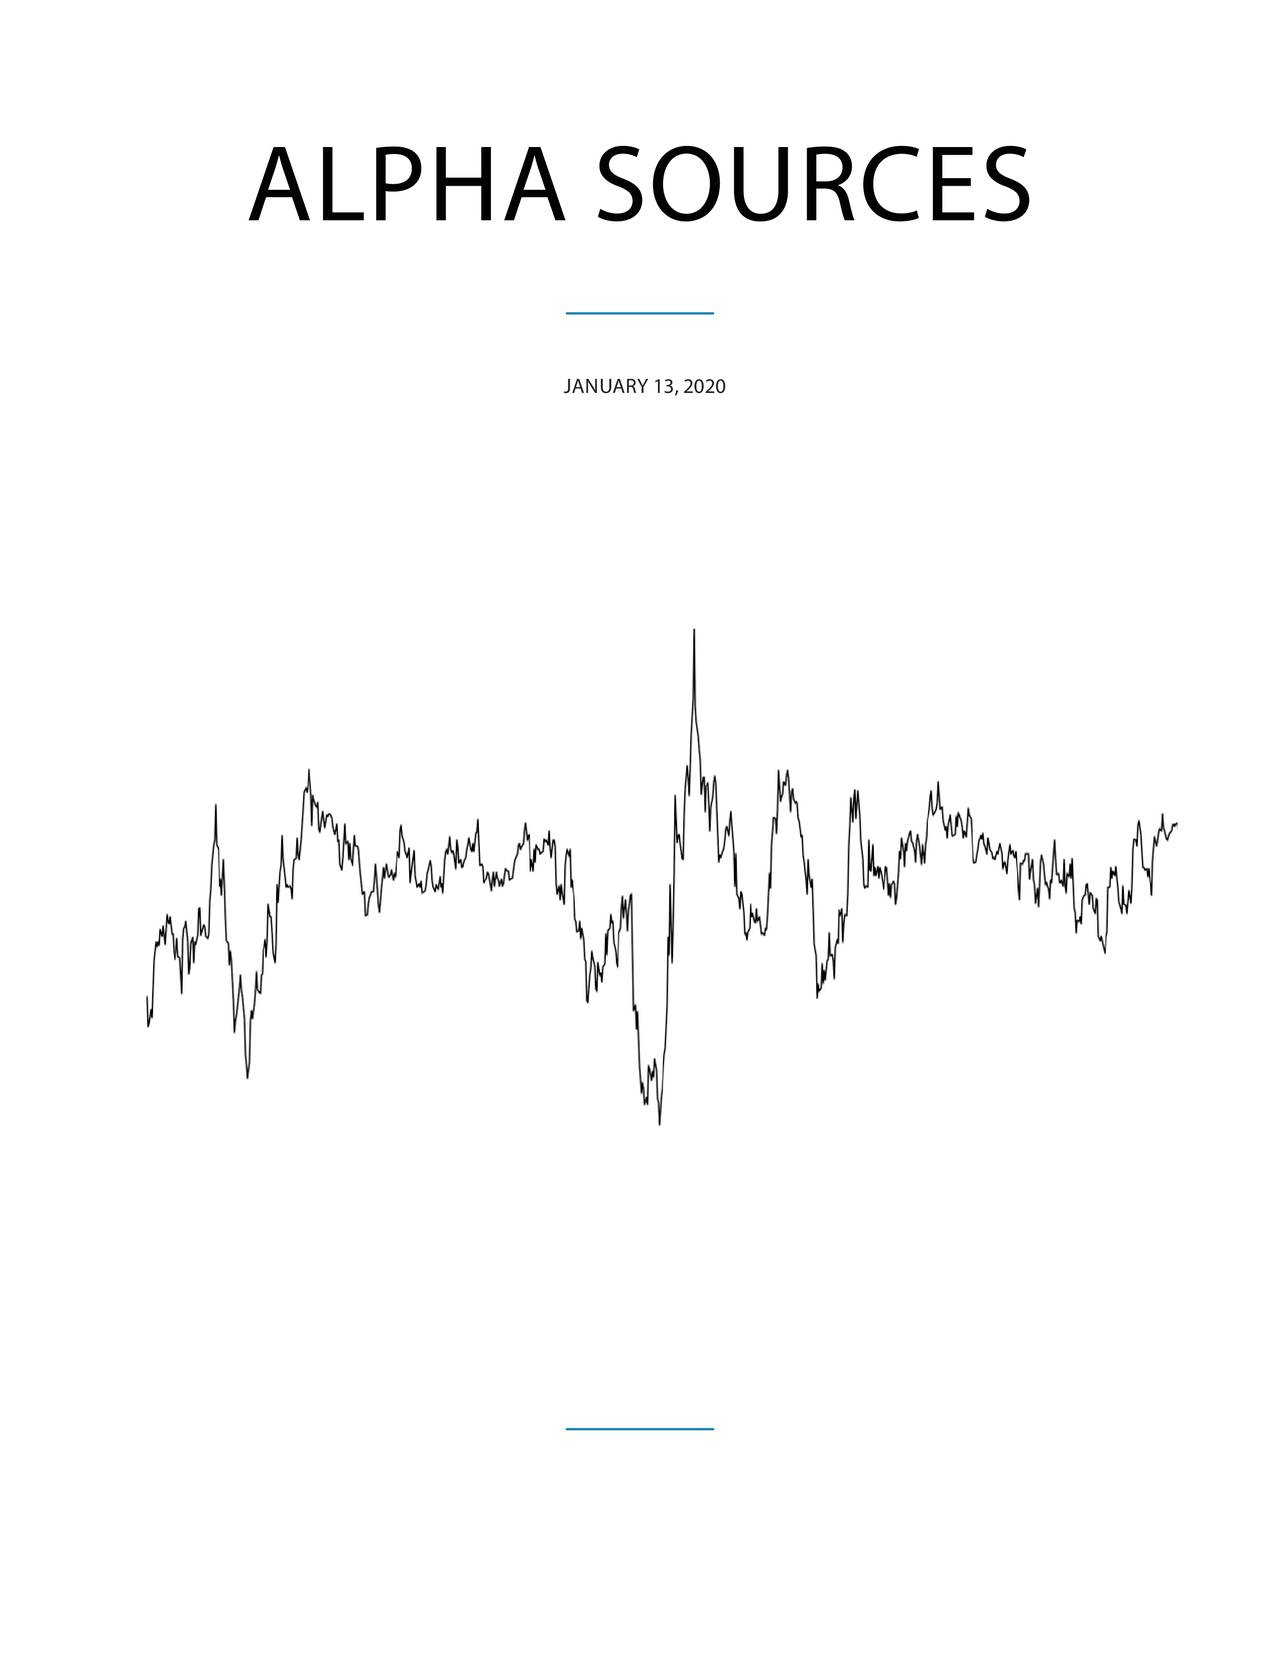 ALPHA SOURCES